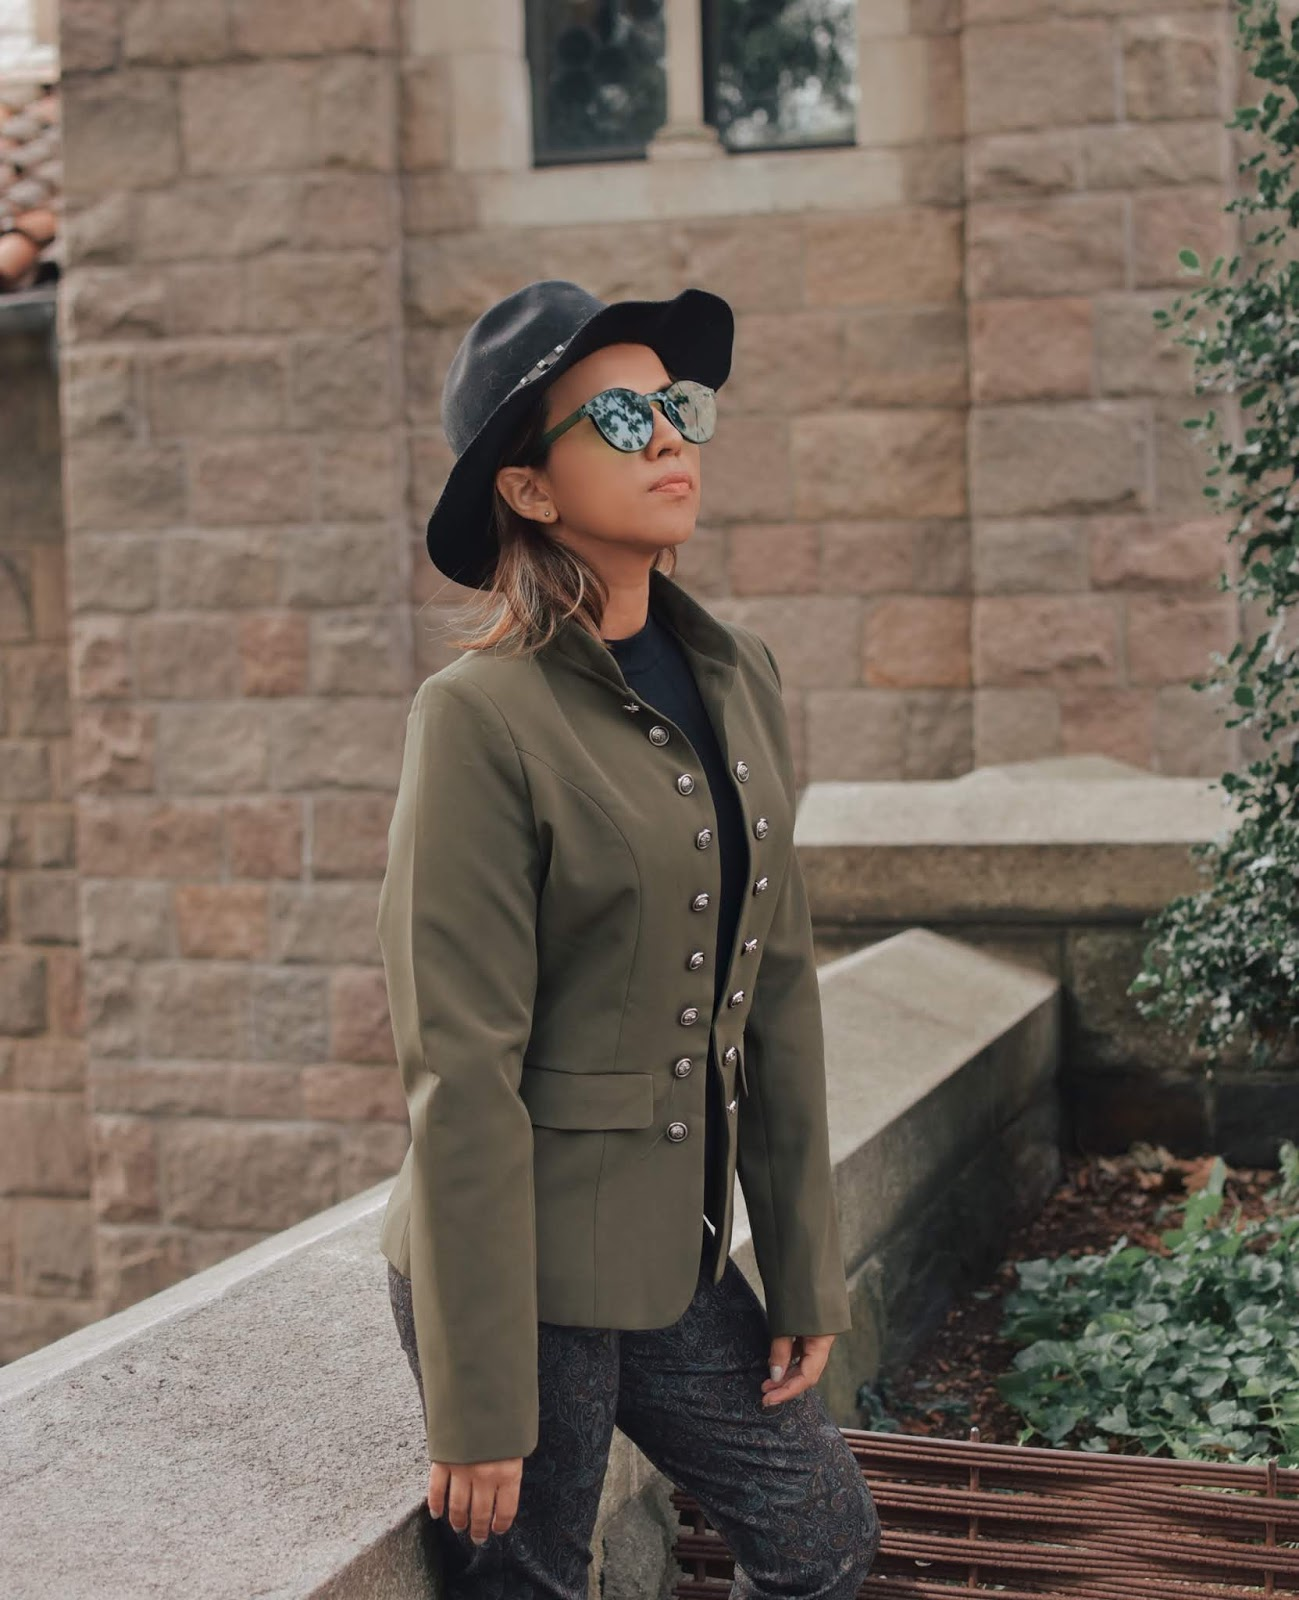 Army Green Stand Collar Open-Front Blazer -mariestilo-lookbookstore-army trend-dcblogger-